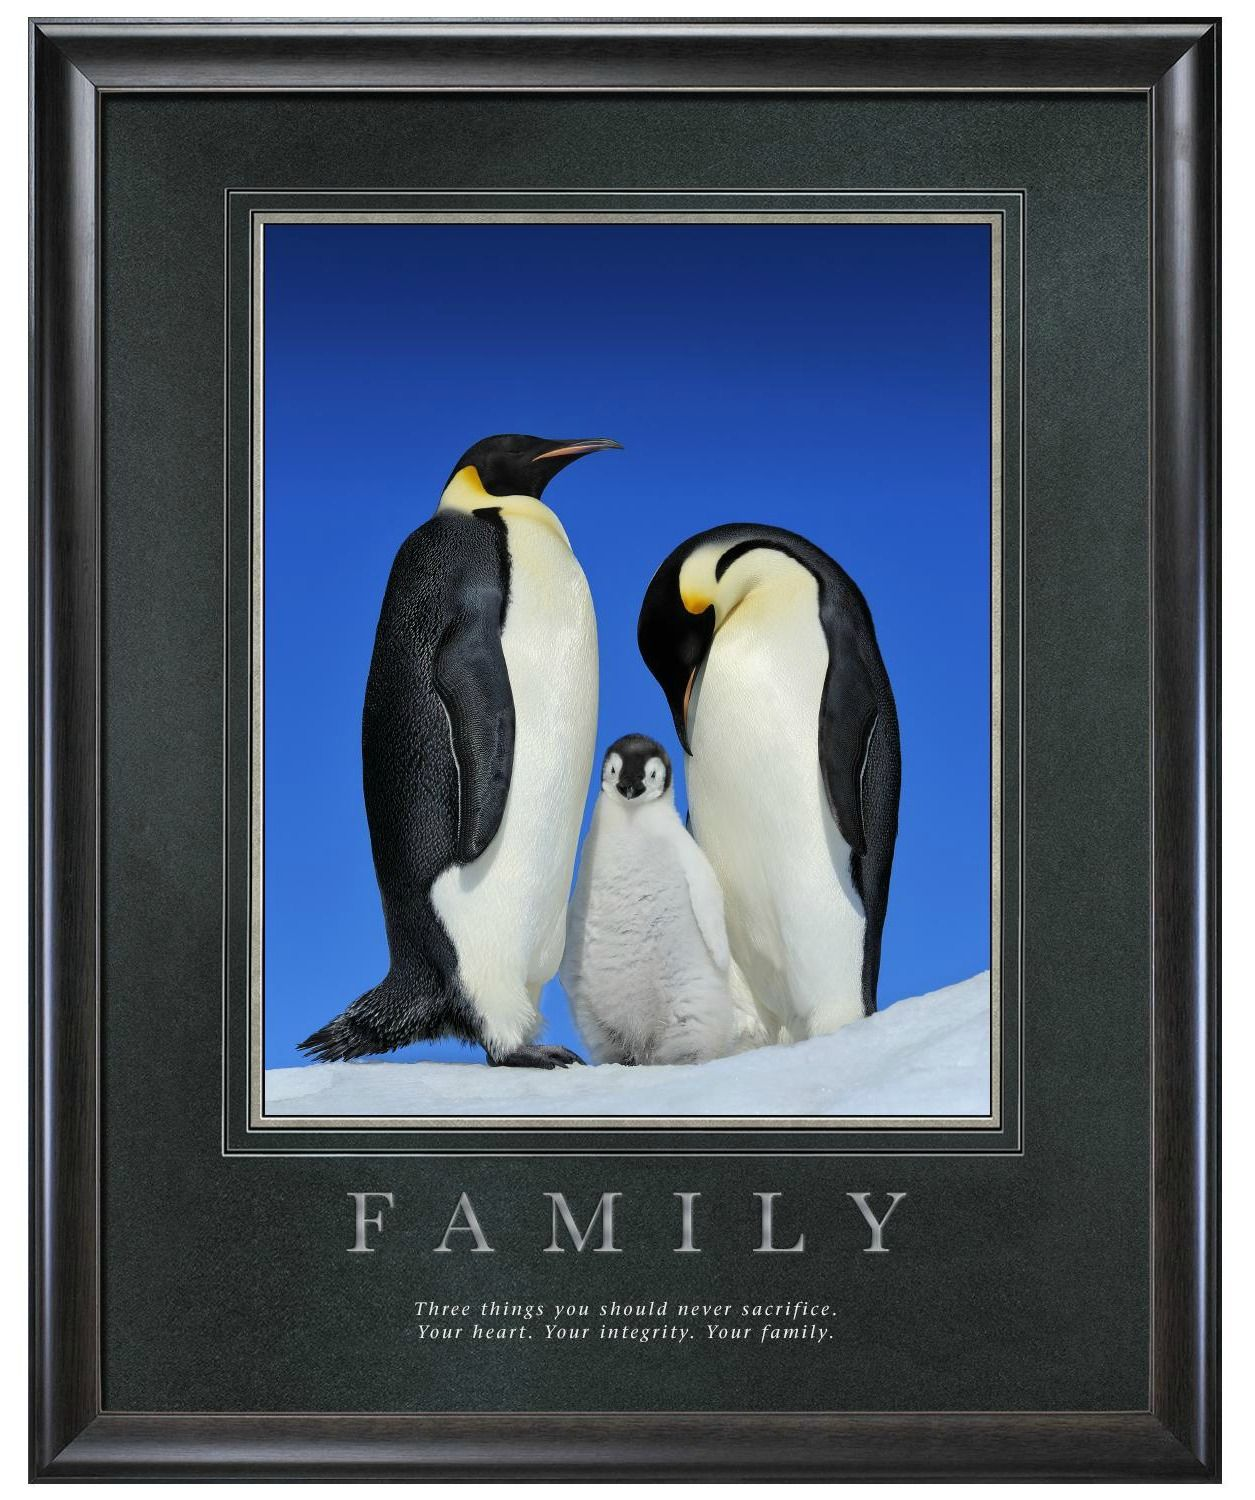 Family penguins motivational poster three things you should family penguins motivational poster three things you should never sacrifice your heart your jeuxipadfo Image collections